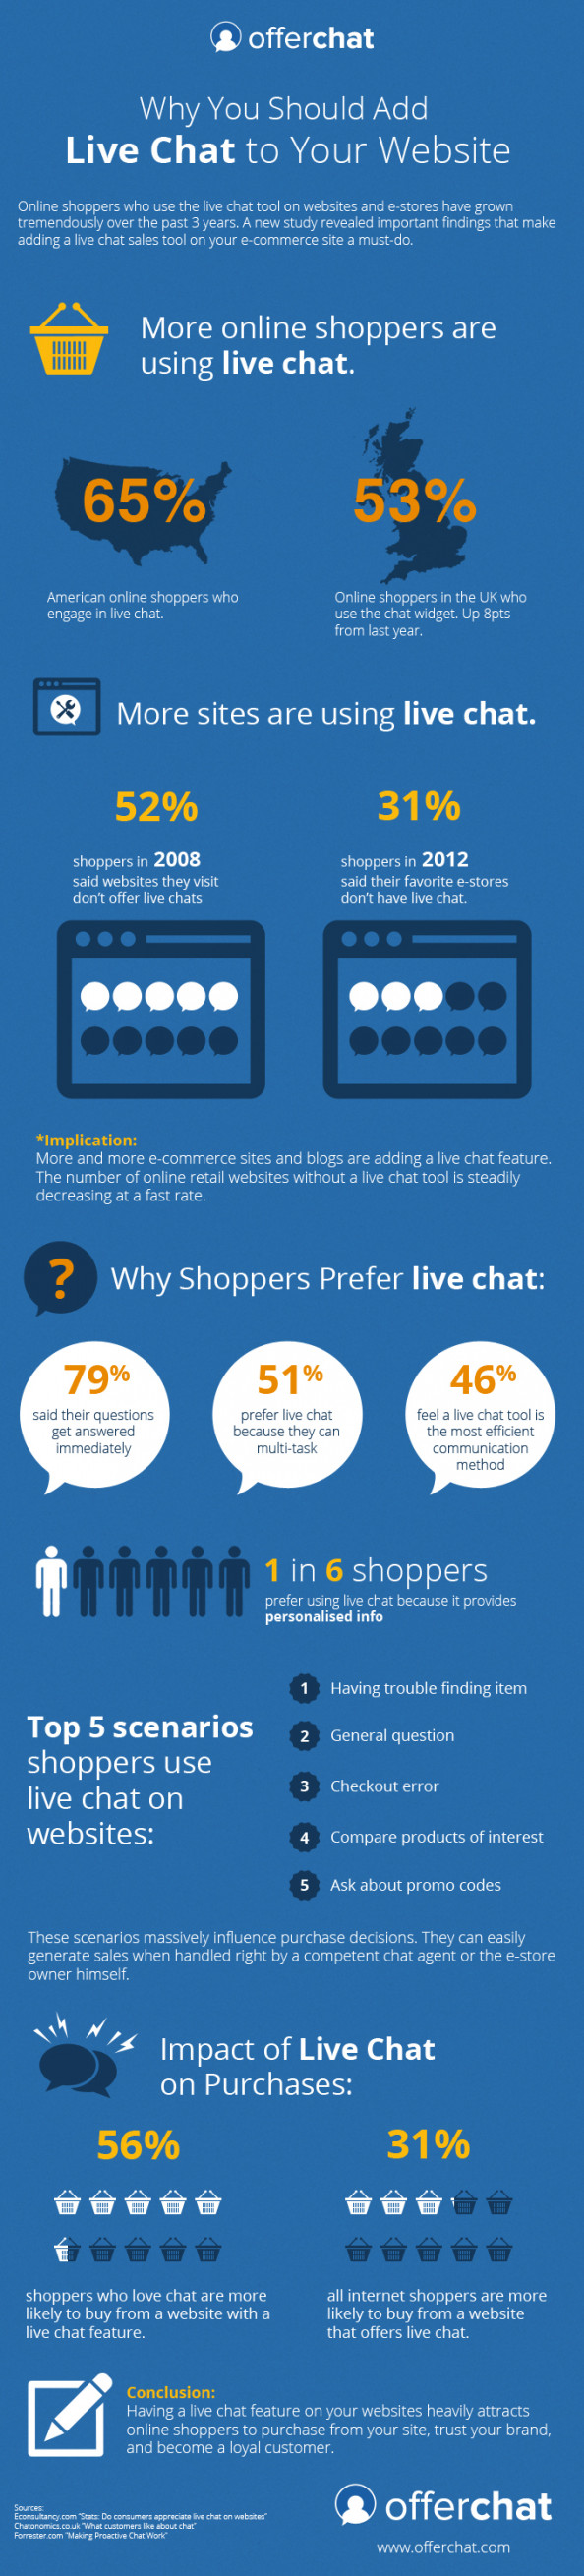 Why You Should Add Live Chat to Your Website Infographic